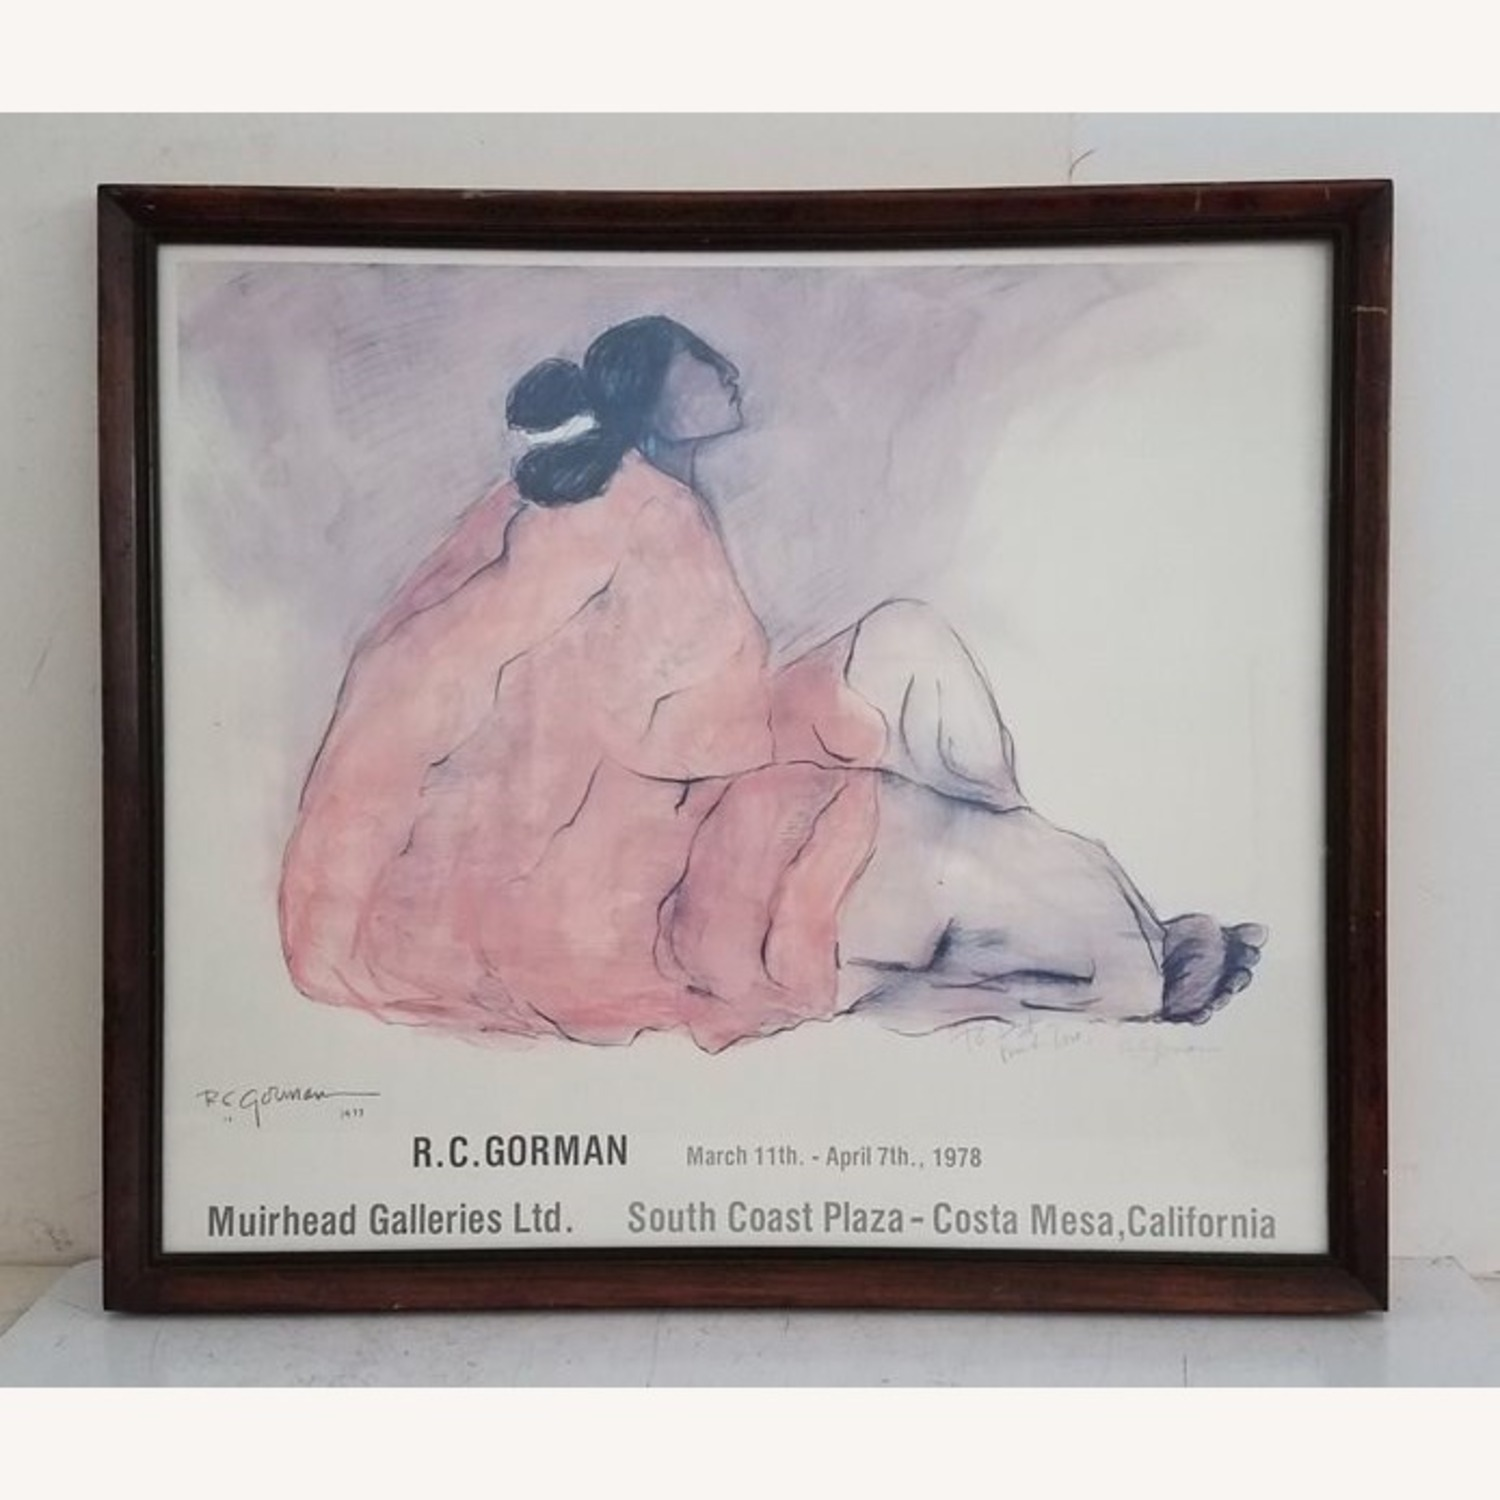 RC Gorman Signed 1978 Lithograph - image-1